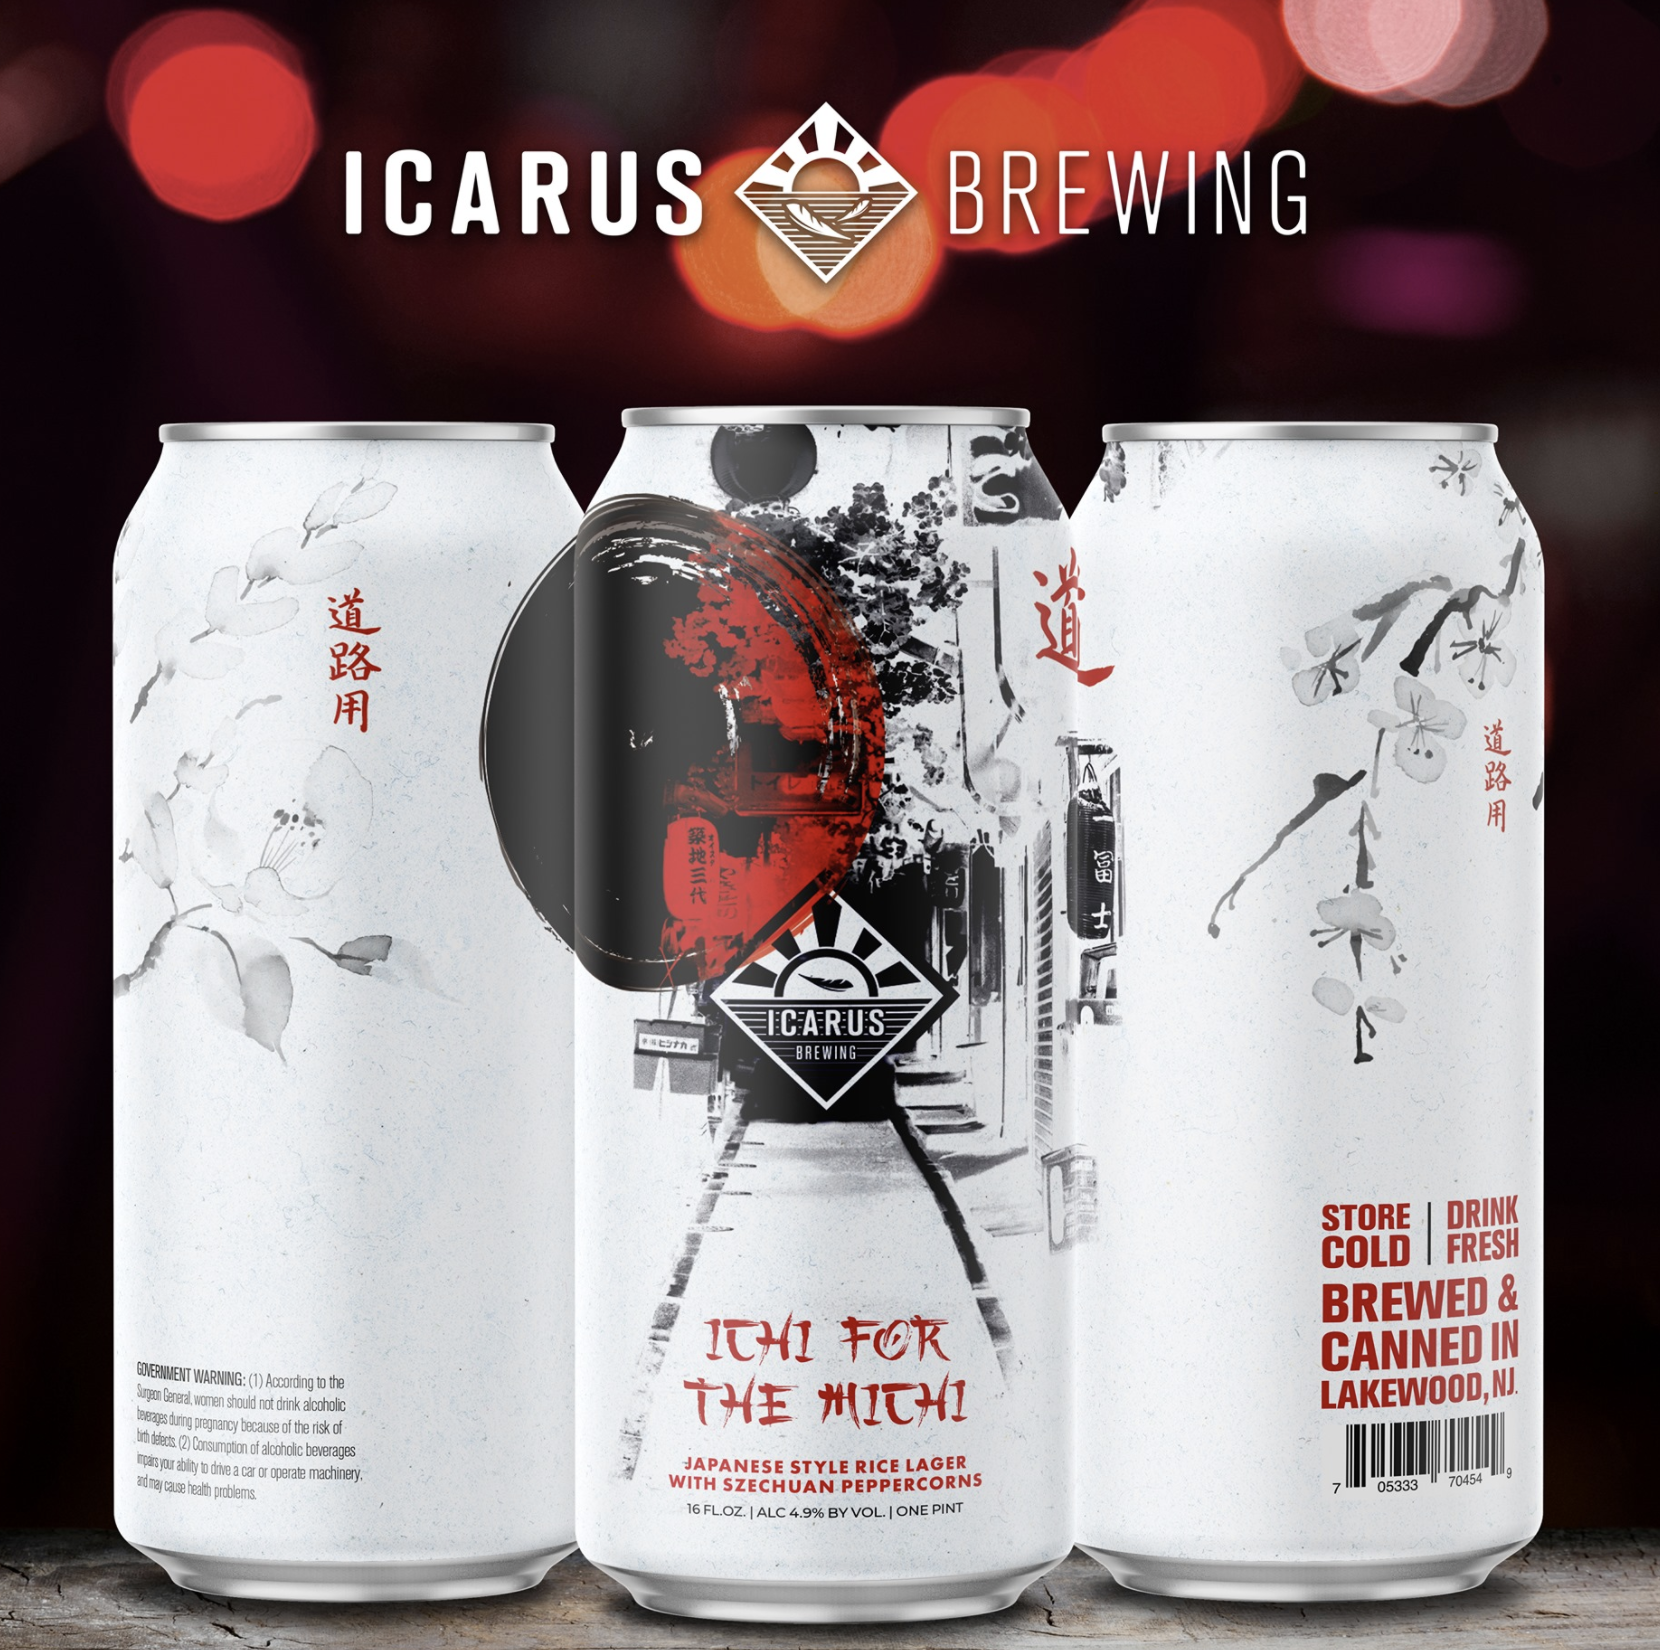 Icarus Ichi for the Michi (2pk 16oz cans)